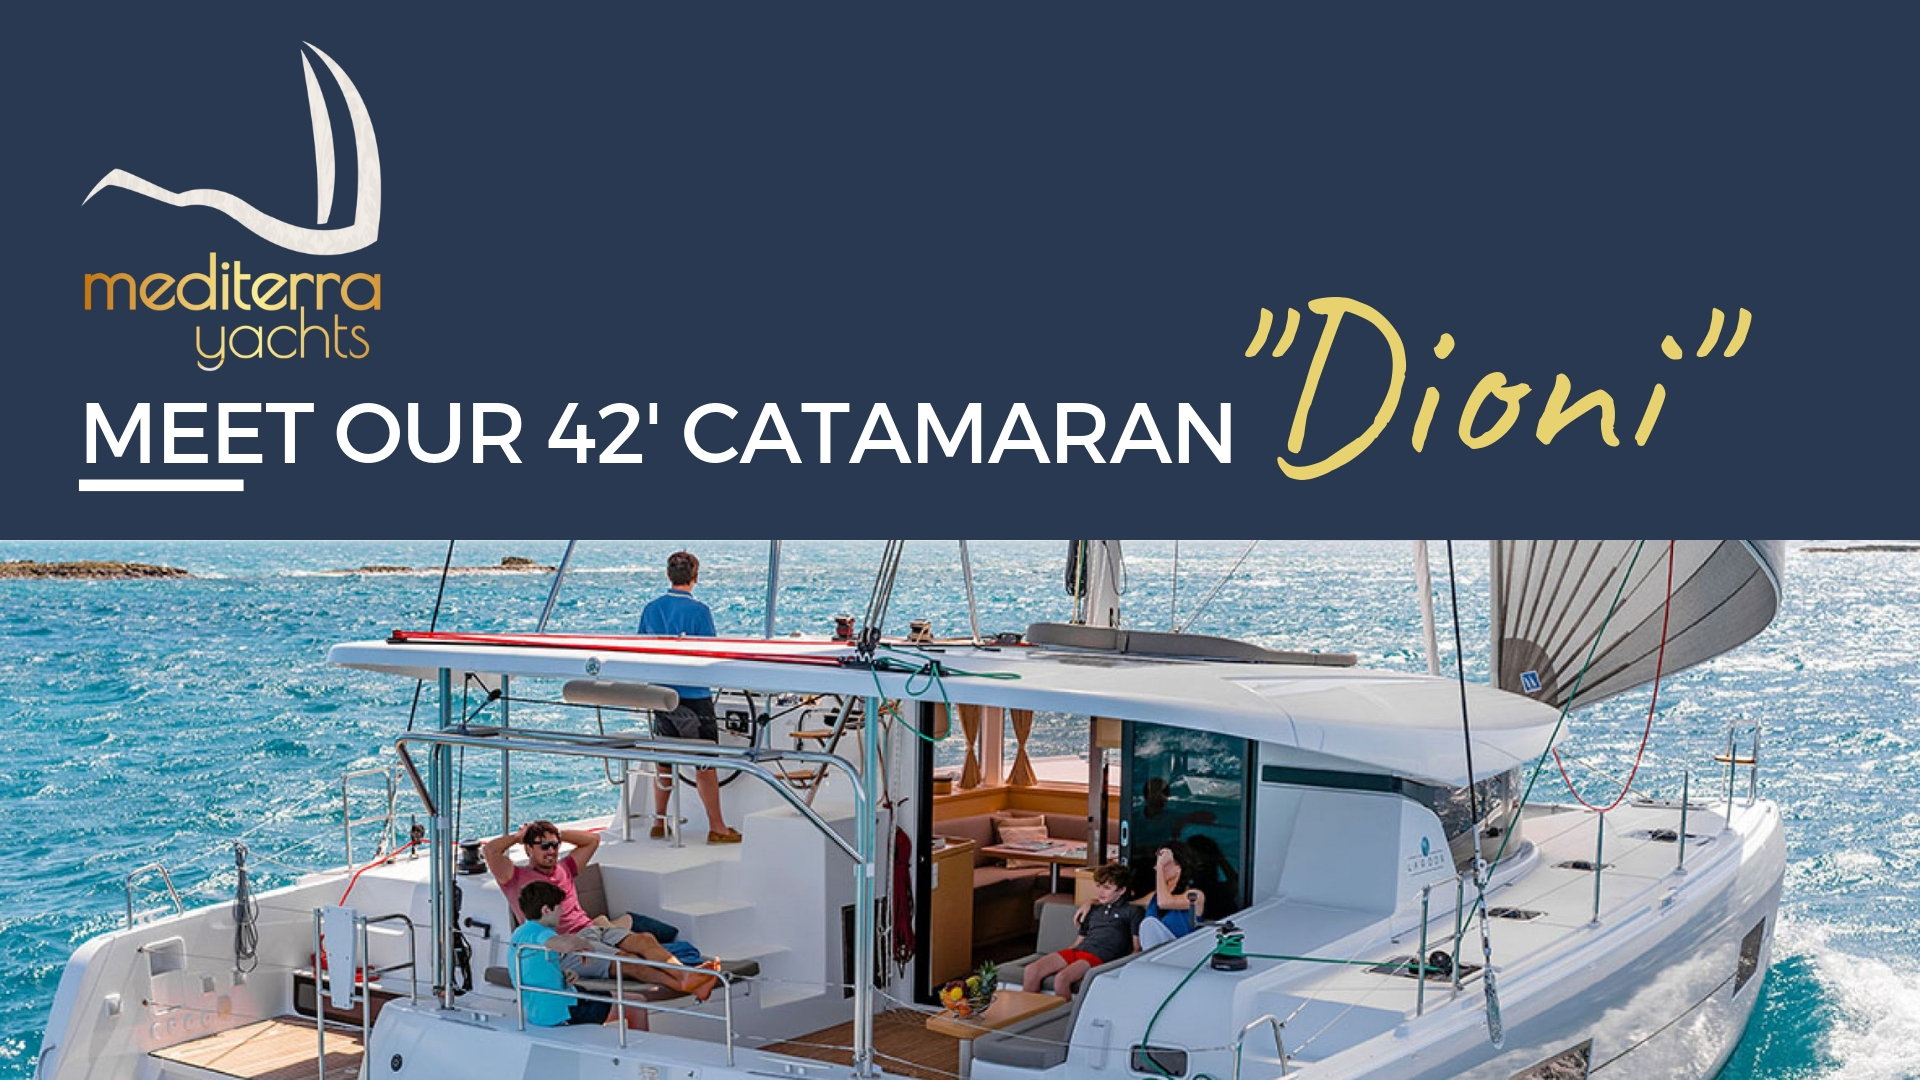 dioni catamaran lagoon rent